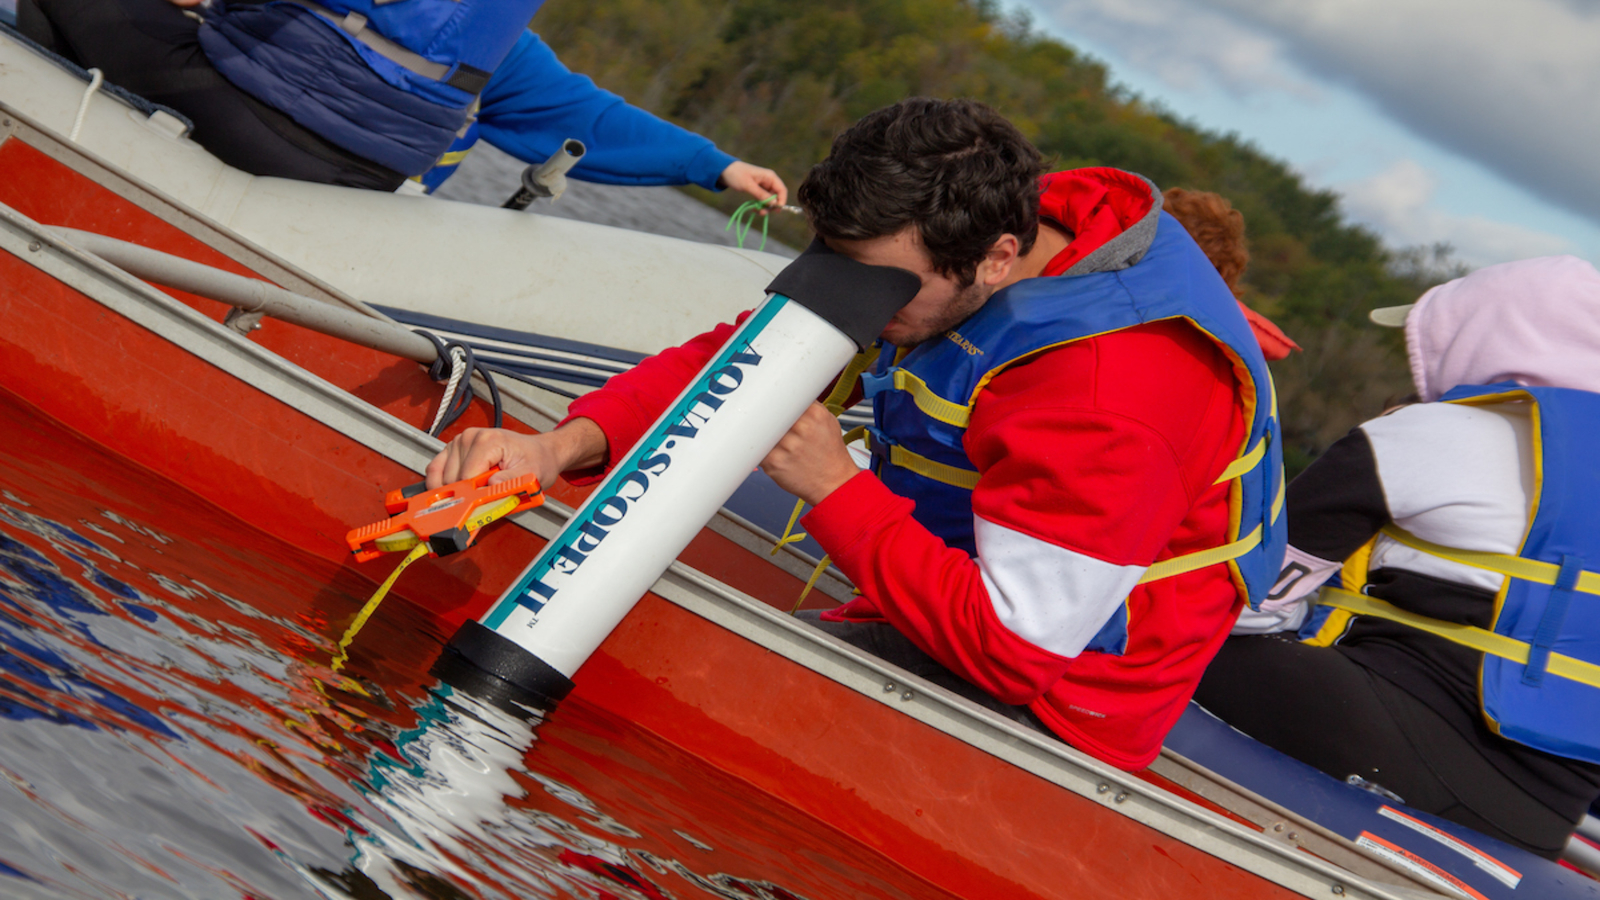 a biology student looks through a large microscope to examine underwater elements while in a canoe